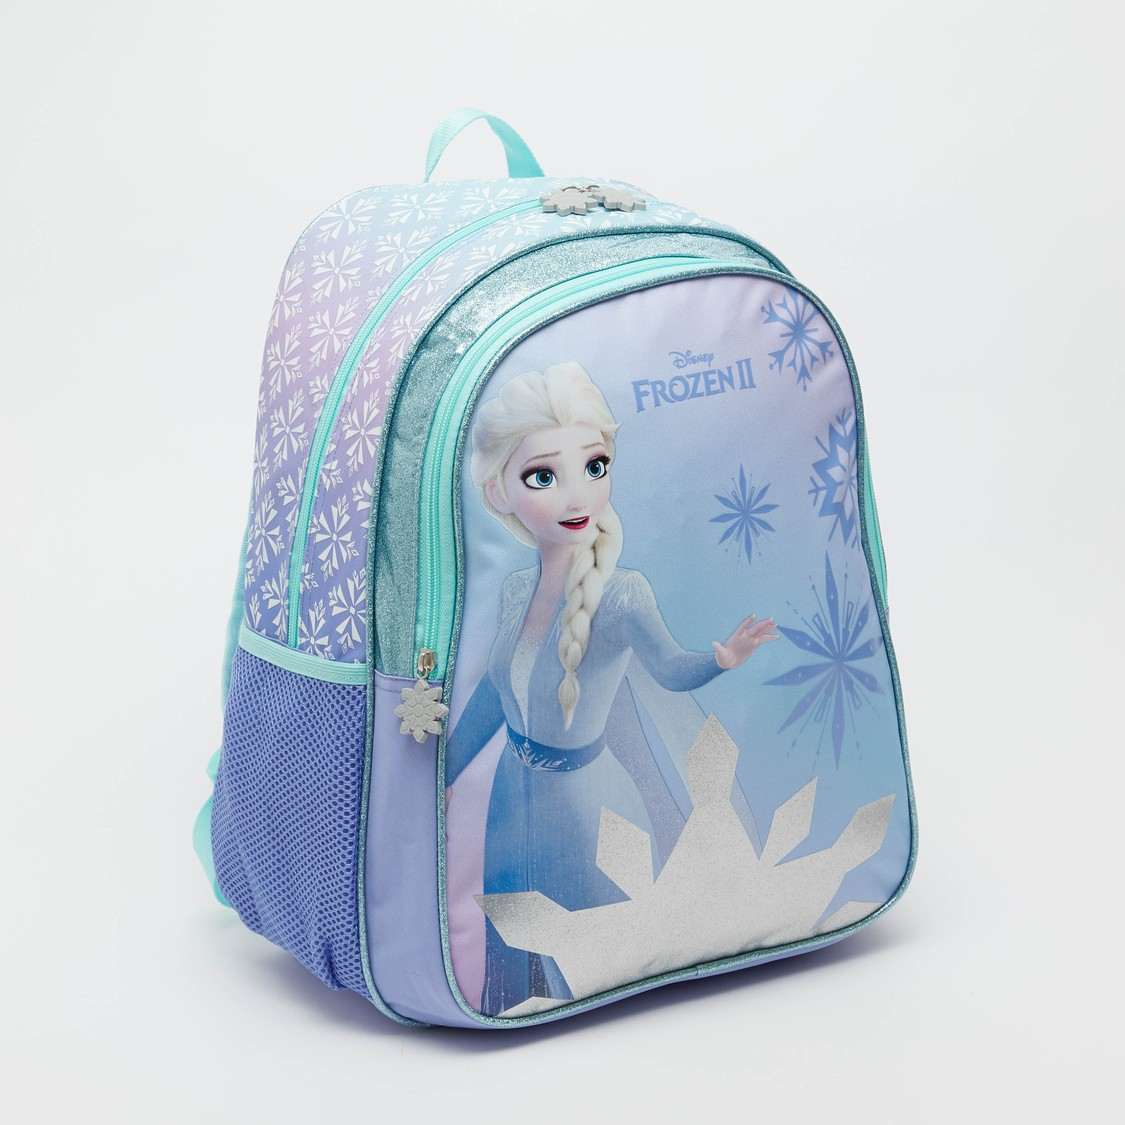 Elsa Print Backpack with Adjustable Shoulder Straps - 16 Inches